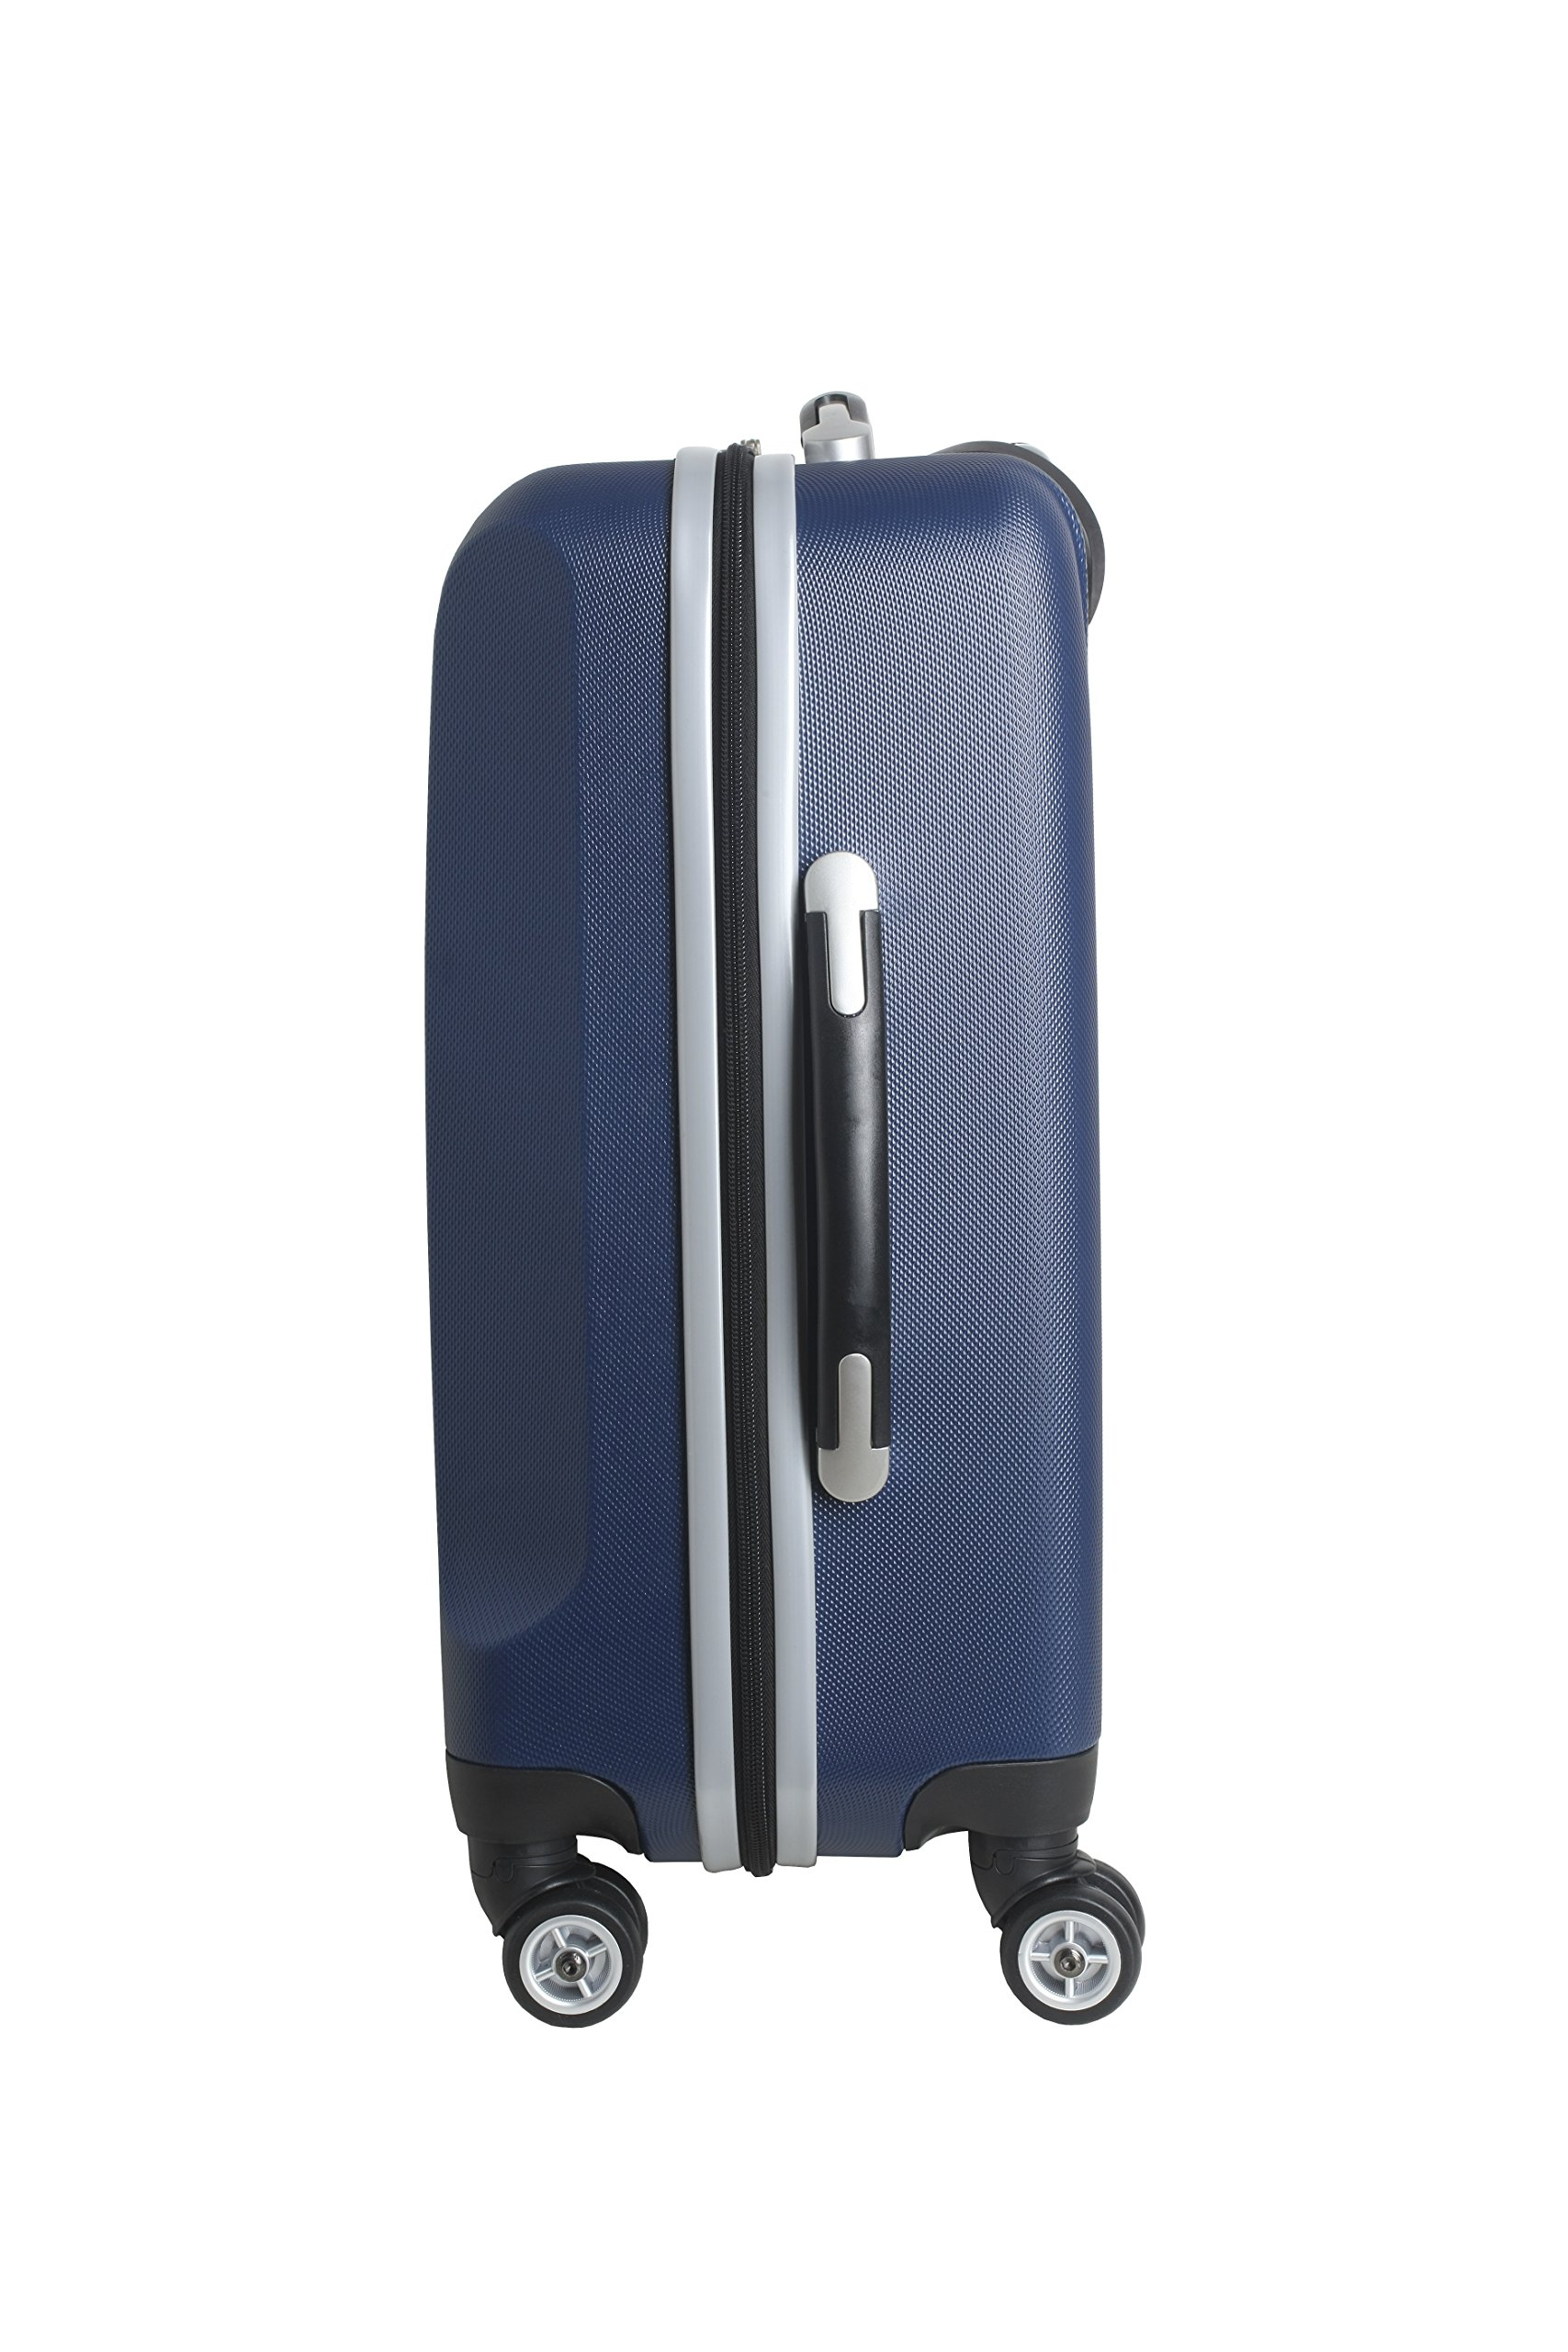 Denco NFL Indianapolis Colts Carry-On Hardcase Luggage Spinner, Navy by Denco (Image #3)